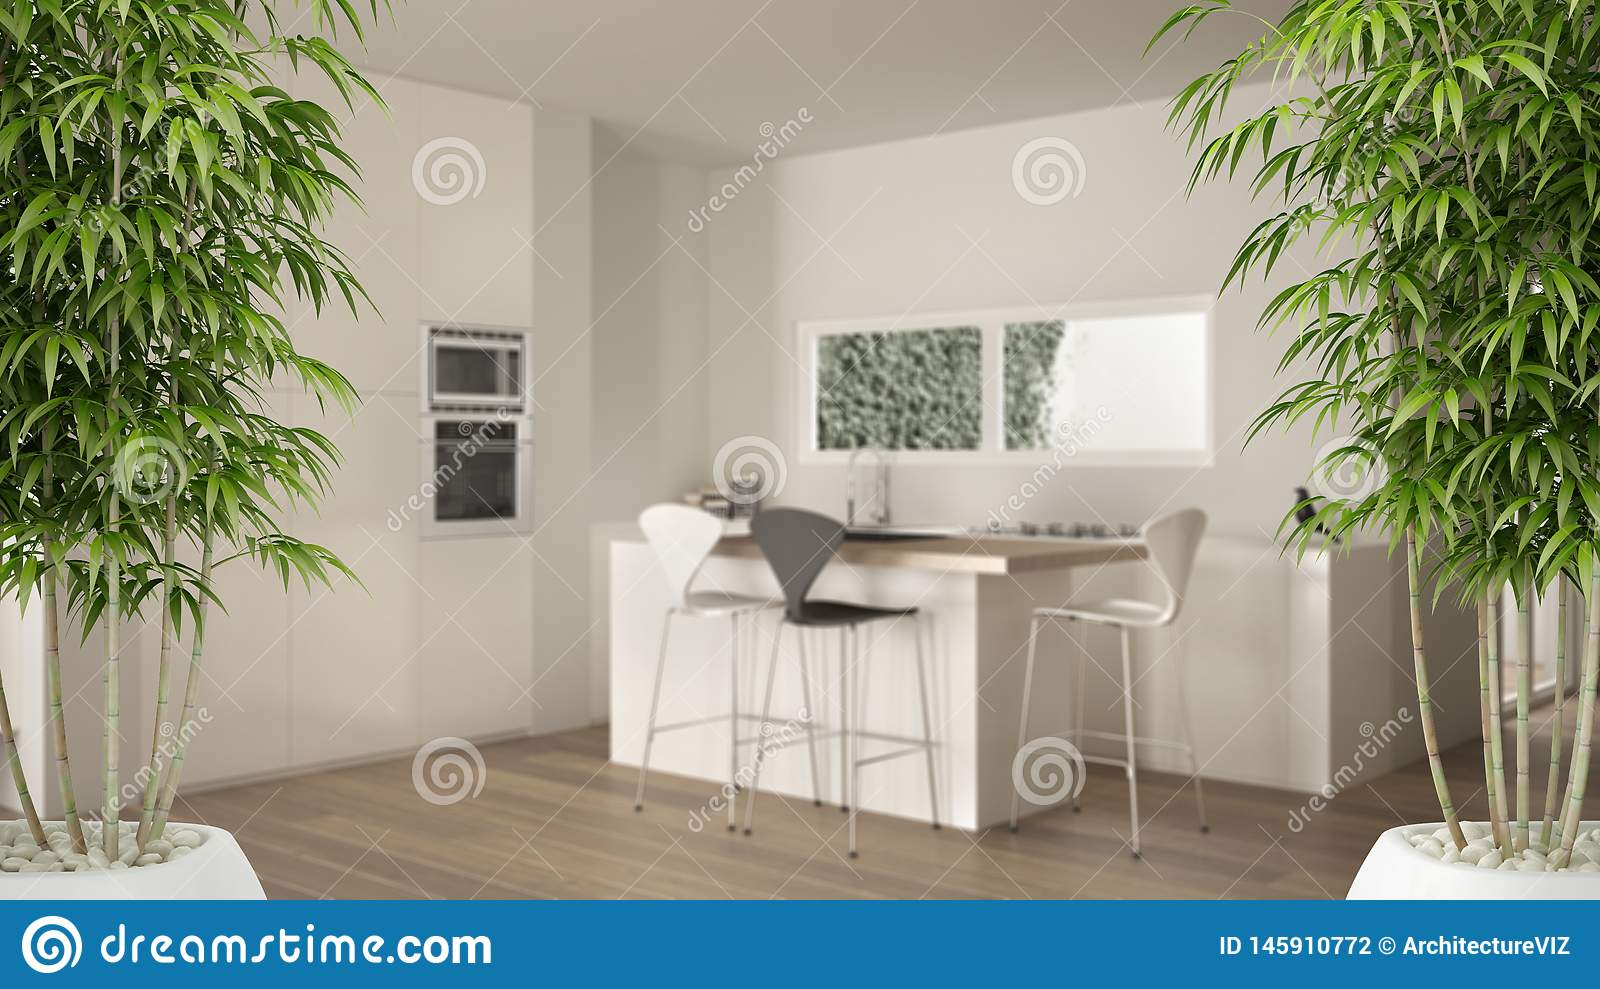 Zen Interior With Potted Bamboo Plant Natural Interior Design Concept Minimalist White Kitchen With Dining Table And Parquet Stock Illustration Illustration Of Branch Bush 145910772